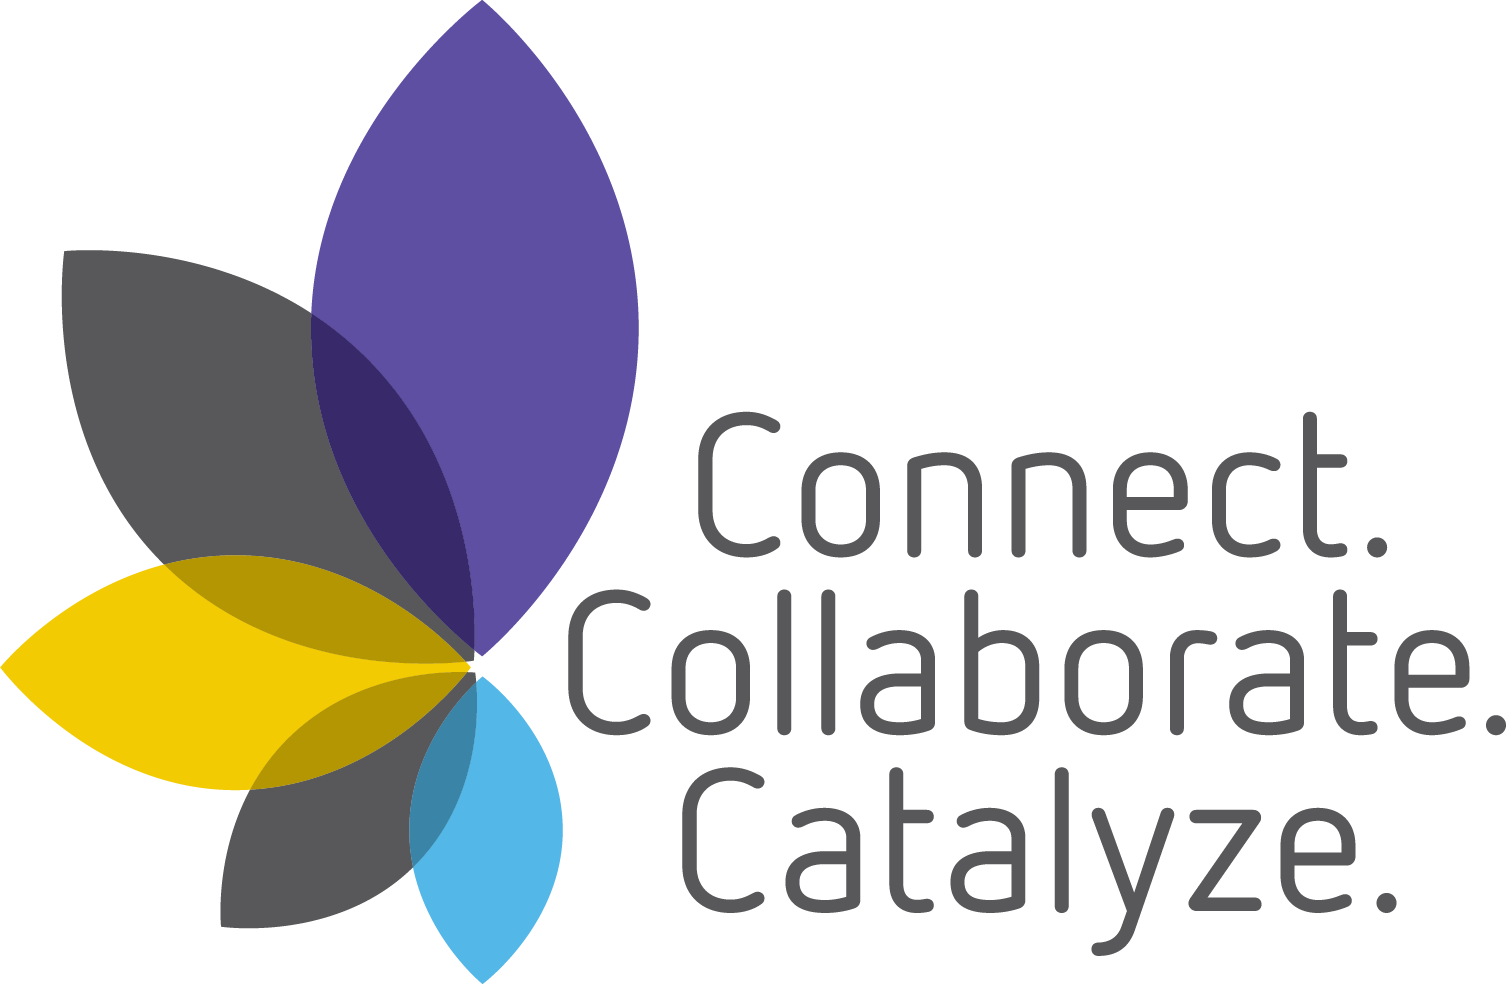 Connect. Collaborate. Catalyze.